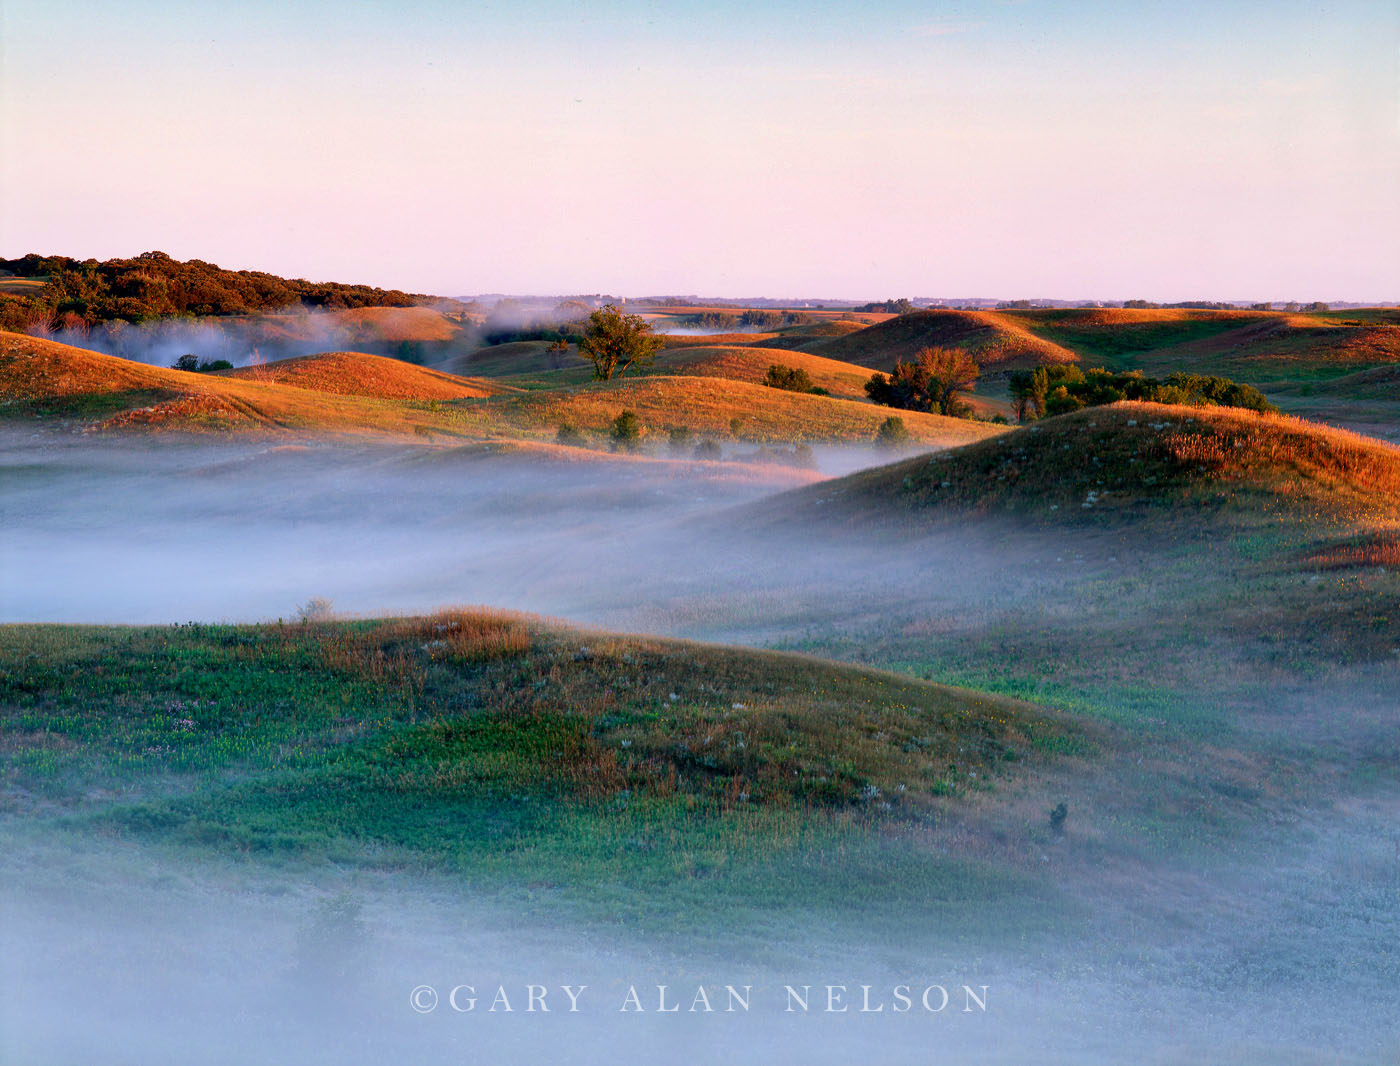 Low laying fog amidst the rolling glacial prairie landscpe of the Leaf Hills, Minnesota